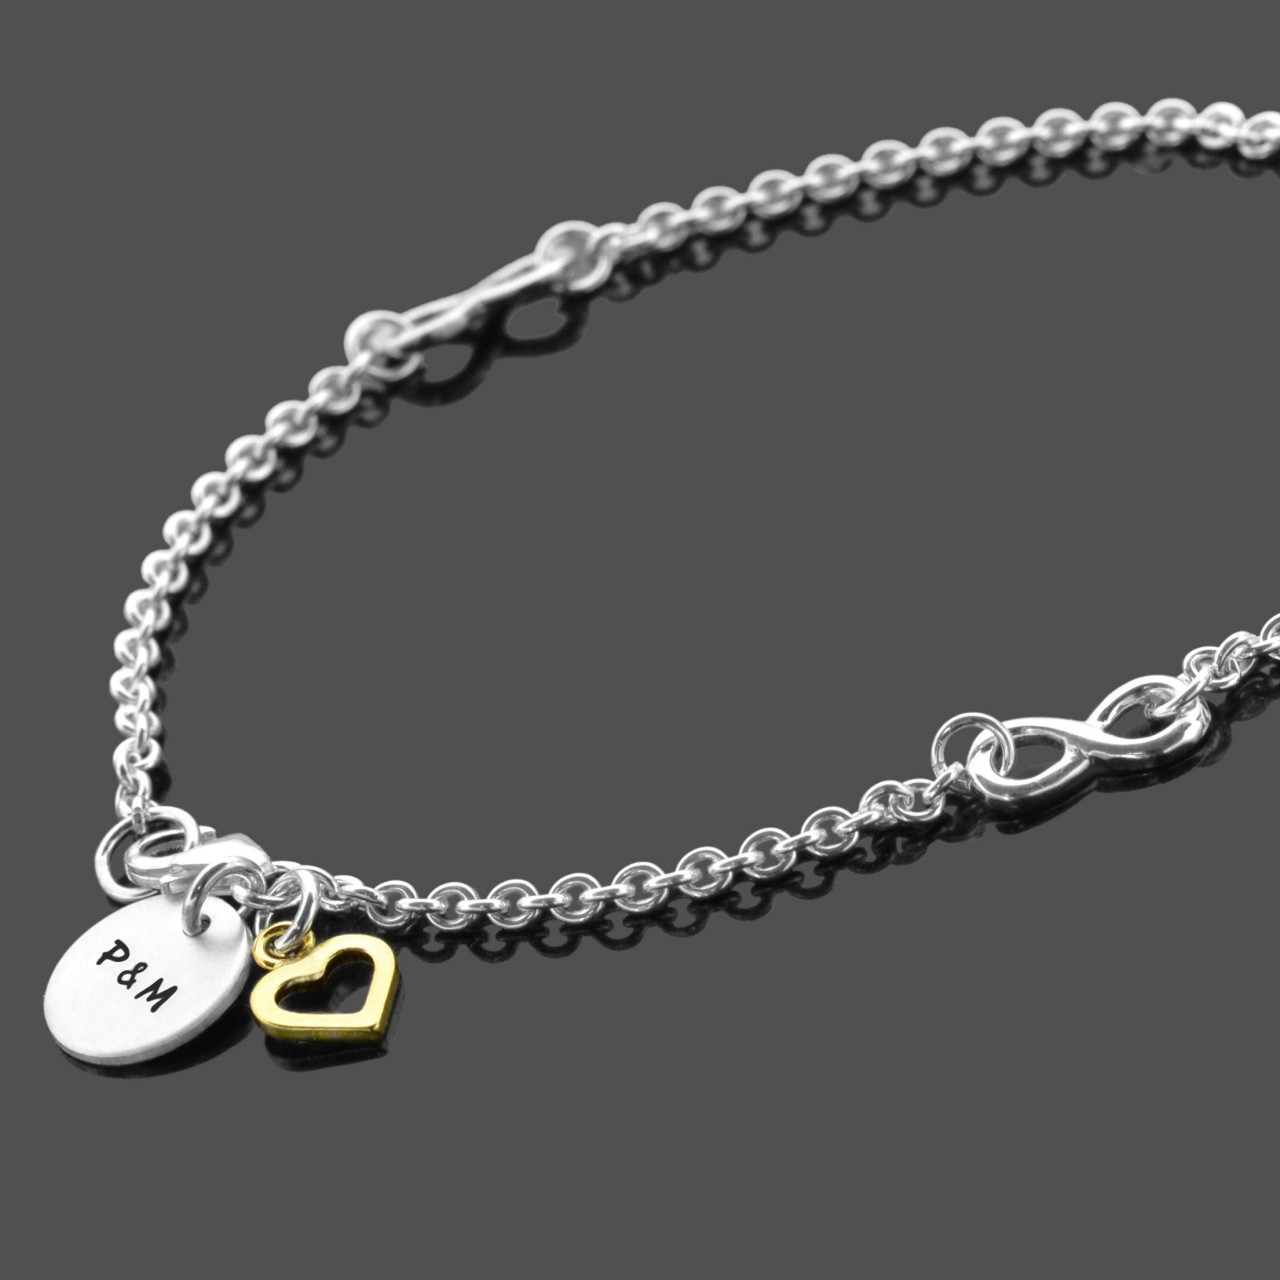 TOGETHERNESS HEART Armband mit Gravur, 925 Silber